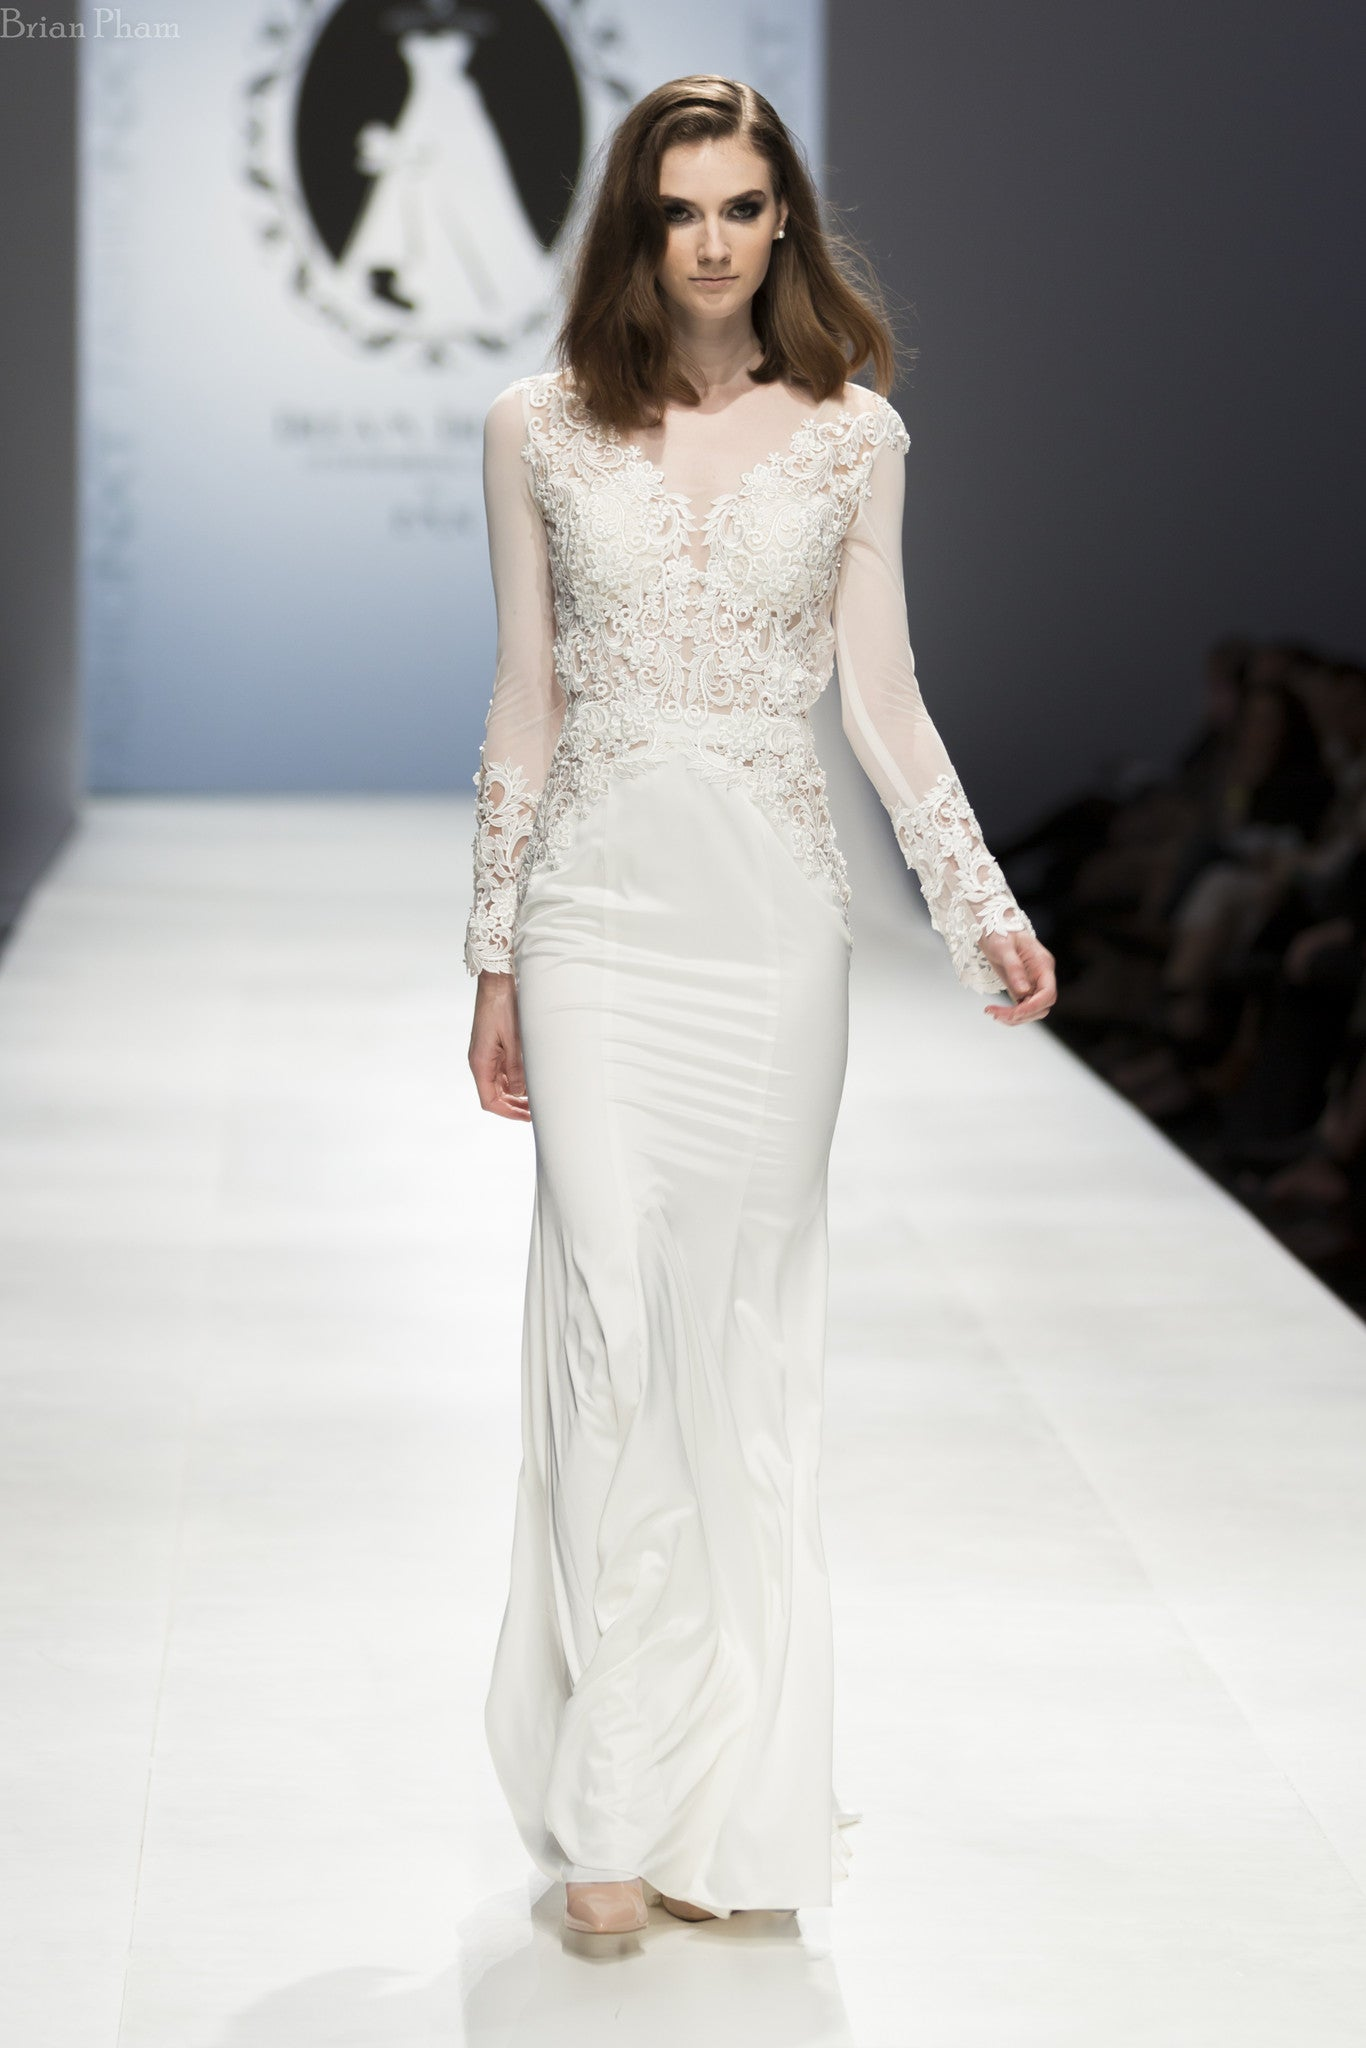 Modern Long Sleeve Wedding Dress (#SS16101) - Dream Dresses by P.M.N  - 2